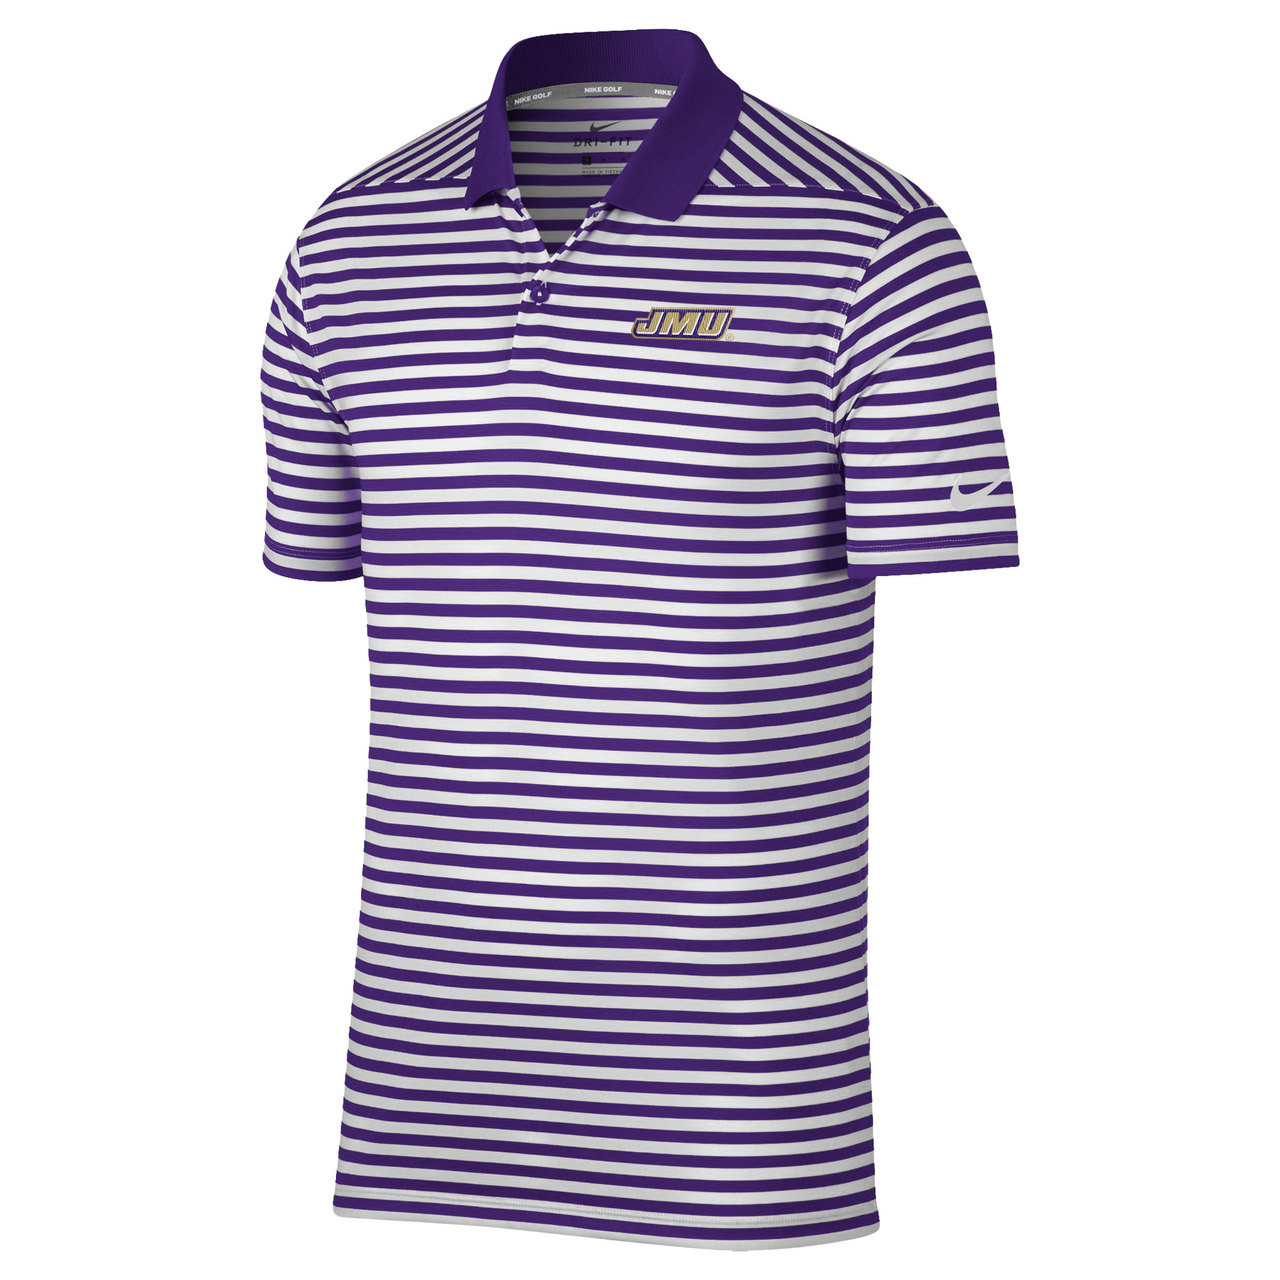 b4eb5a869 Nike JMU Victory 2.0 Mini Stripe Polo - University Outpost